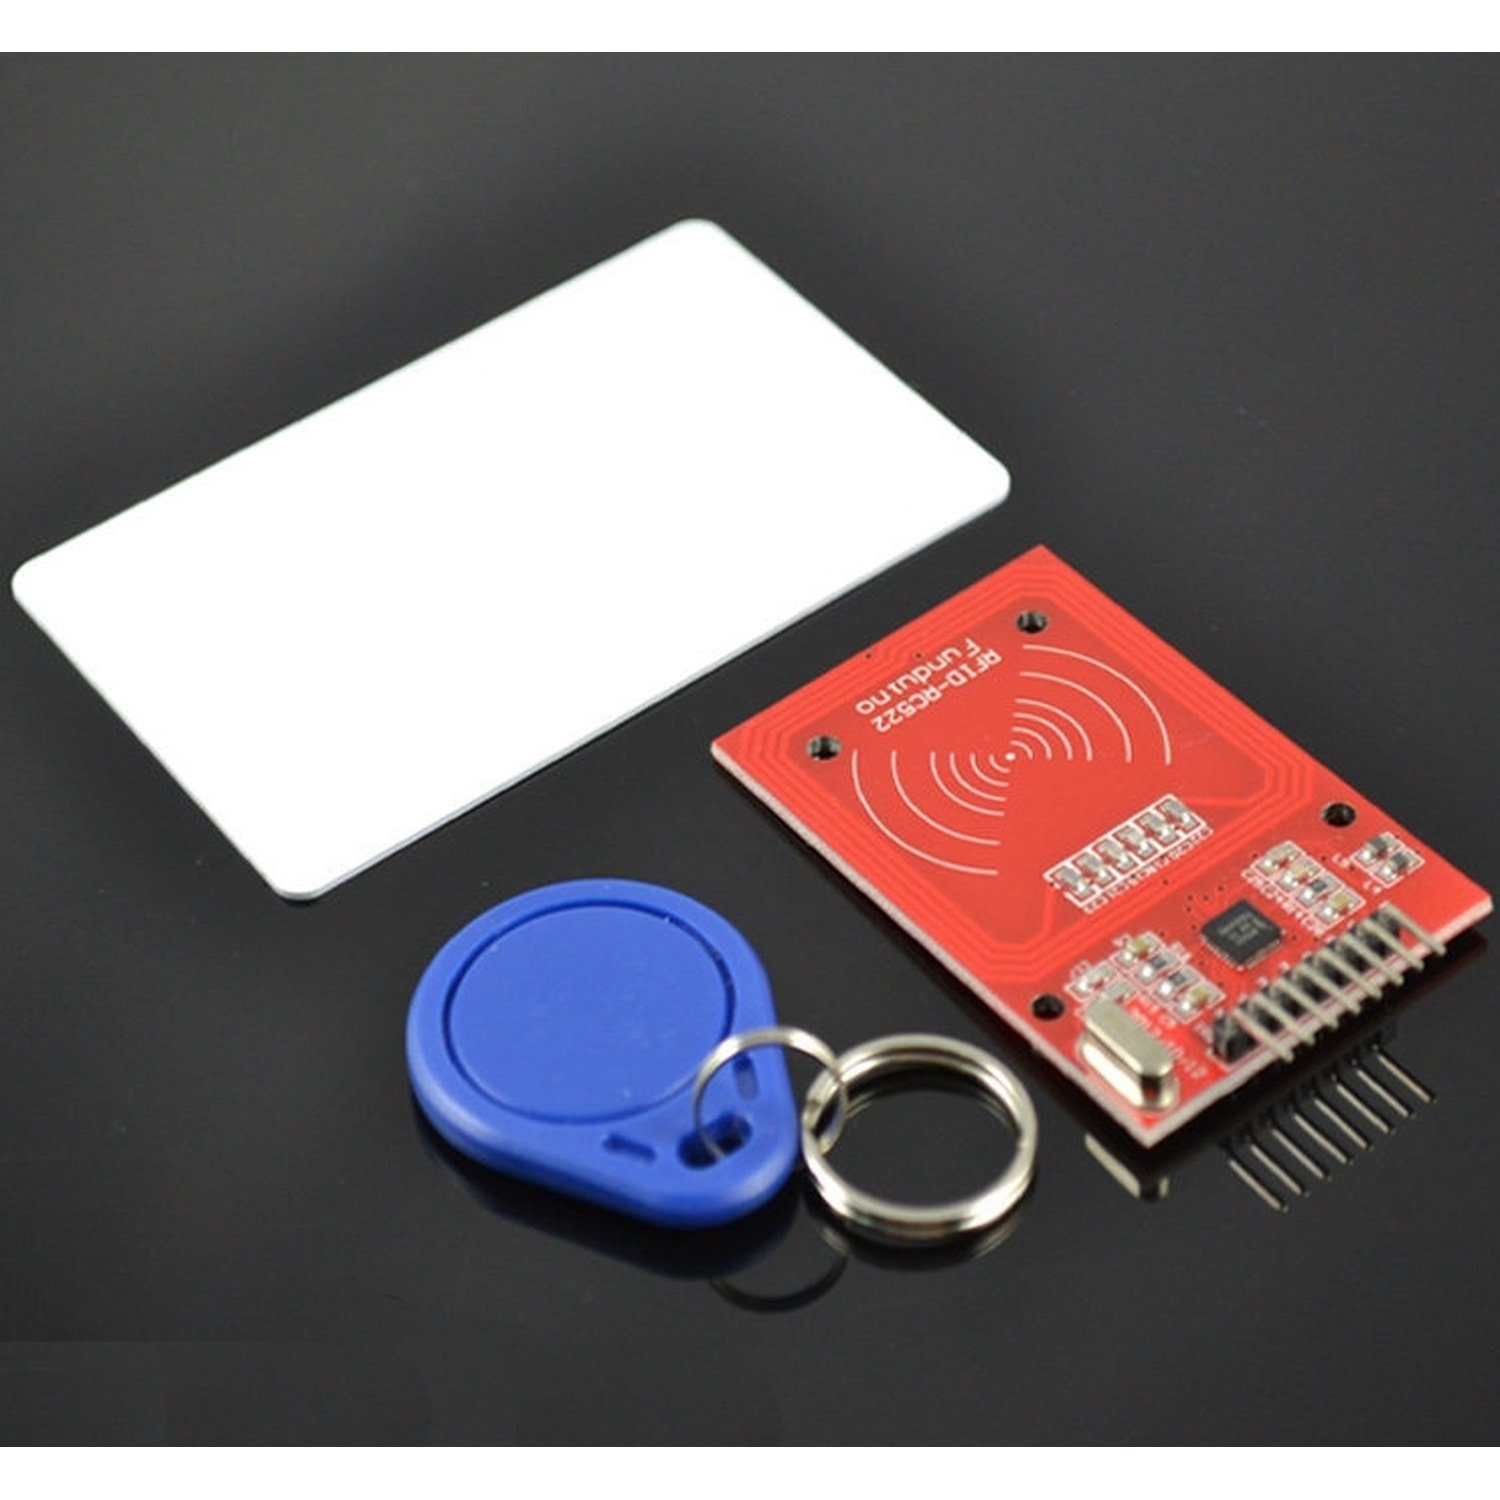 Module RC522 Antenna Read/Write Card Reader RFID Proximity Arduino Compatible